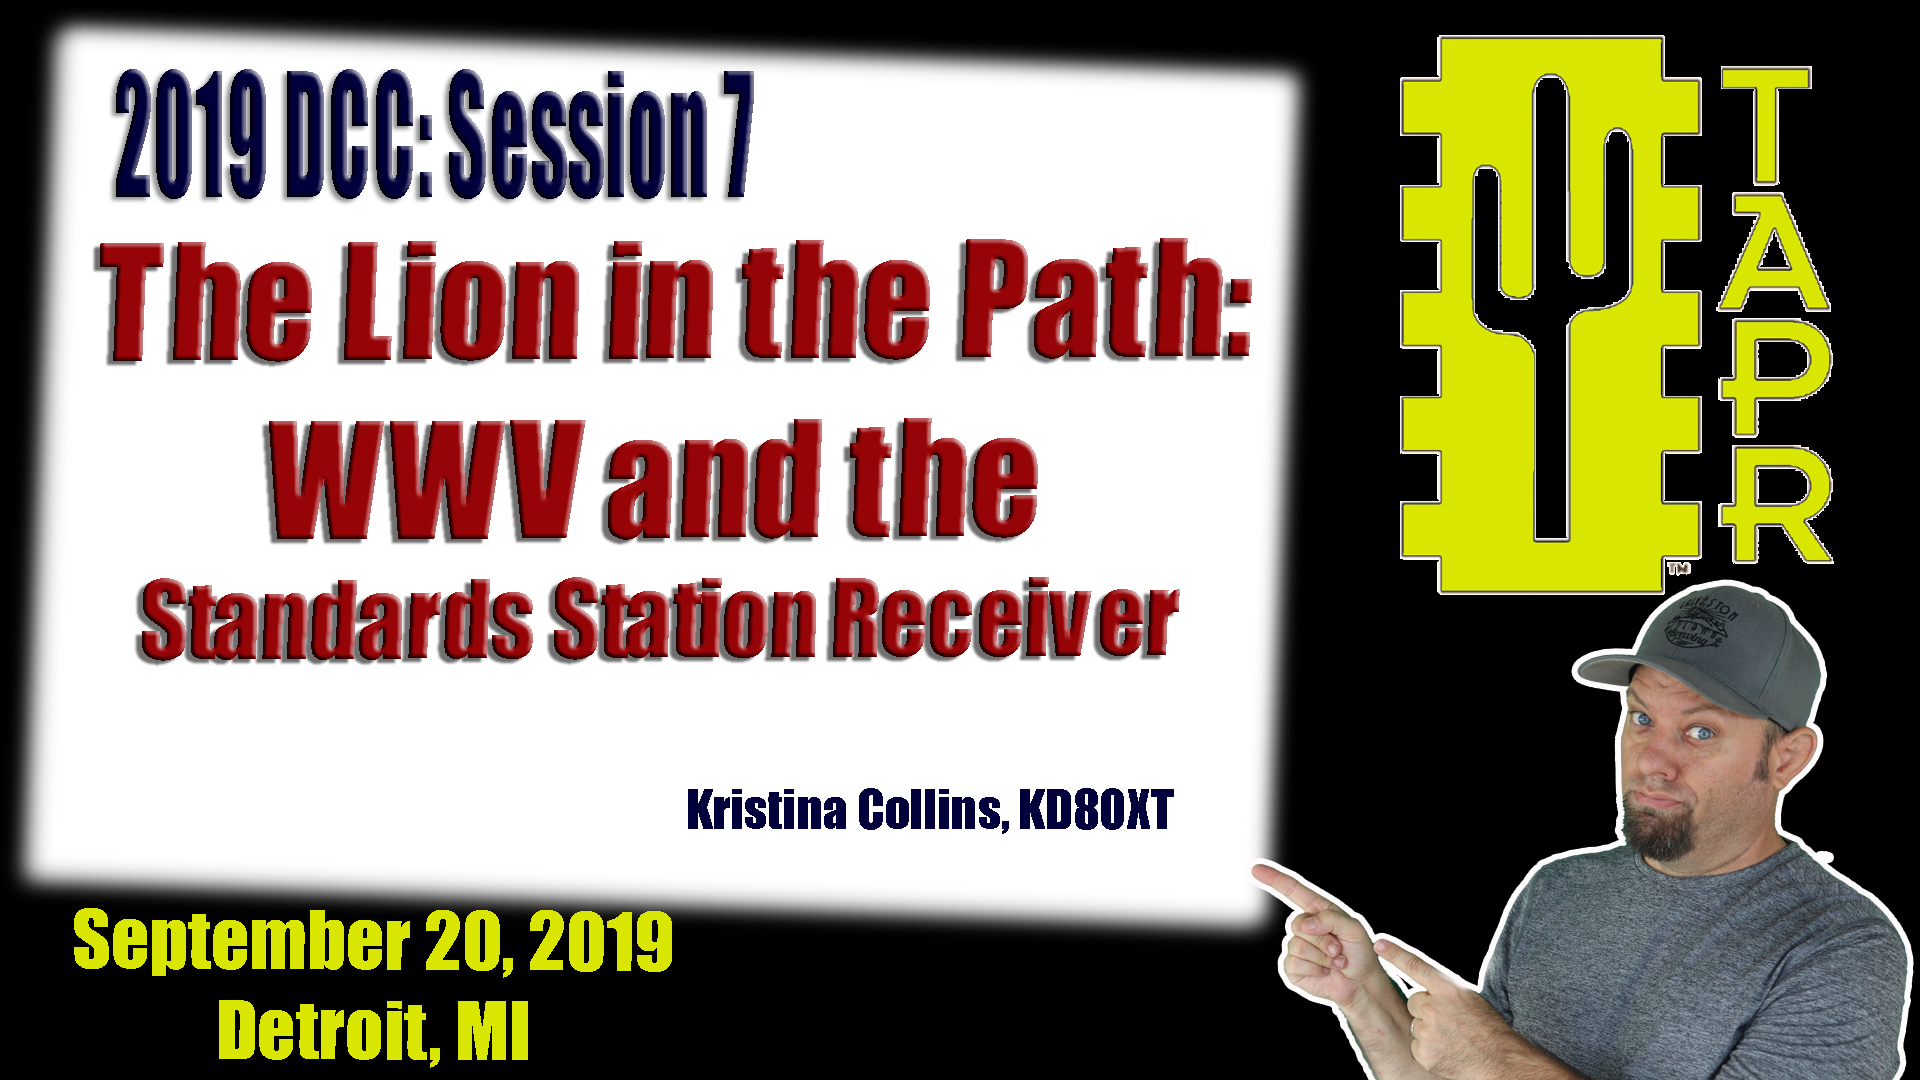 Episode 283: WWV and the Standards Station Receiver